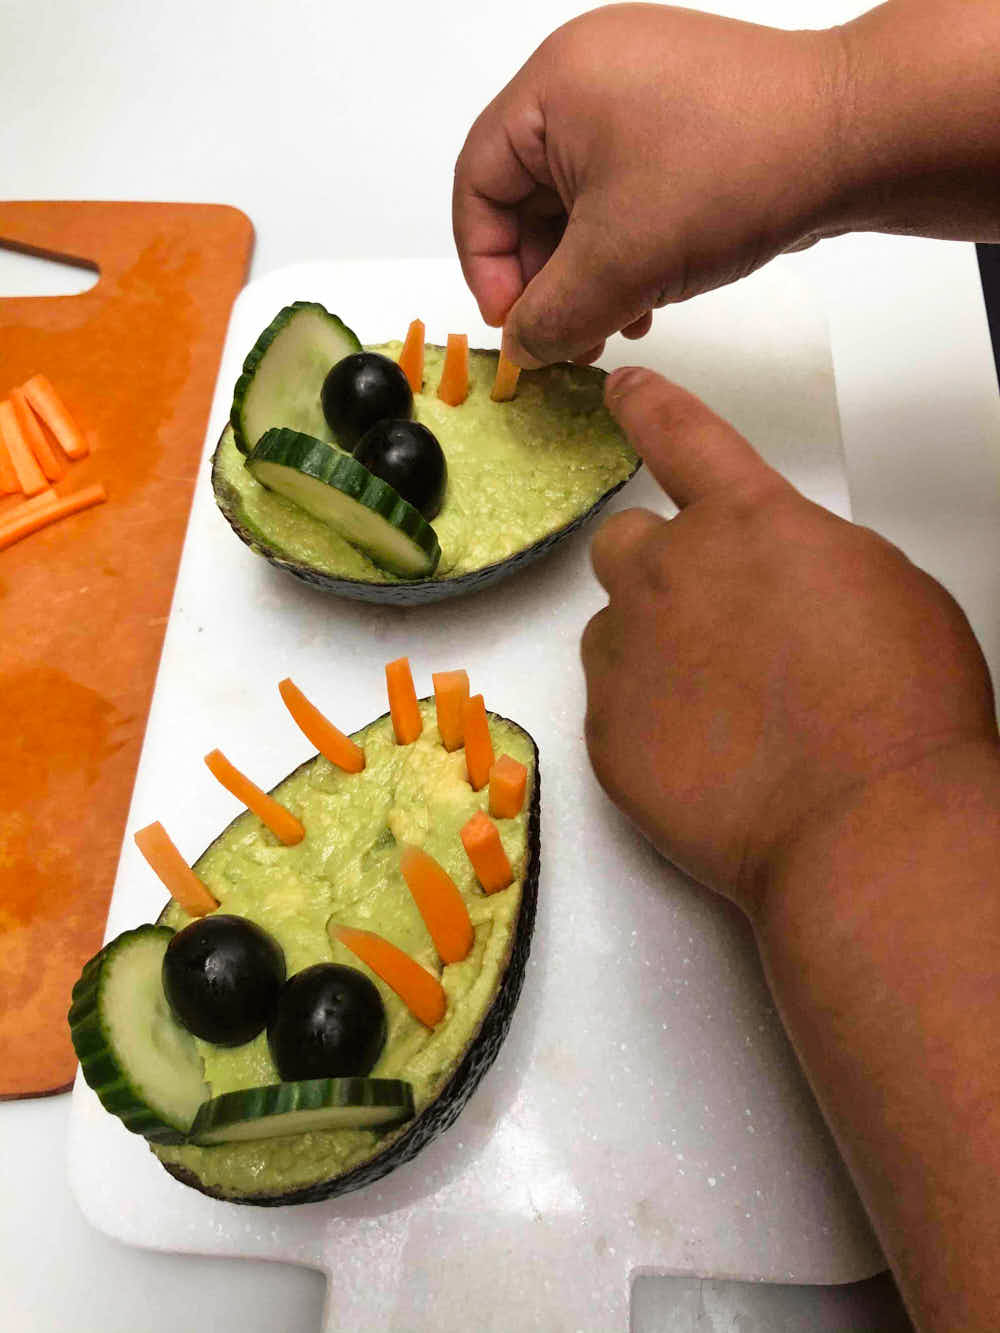 Cute Kids Food - Healthy Veggie Dip Crocodile being made and assembled with carrot teeth.